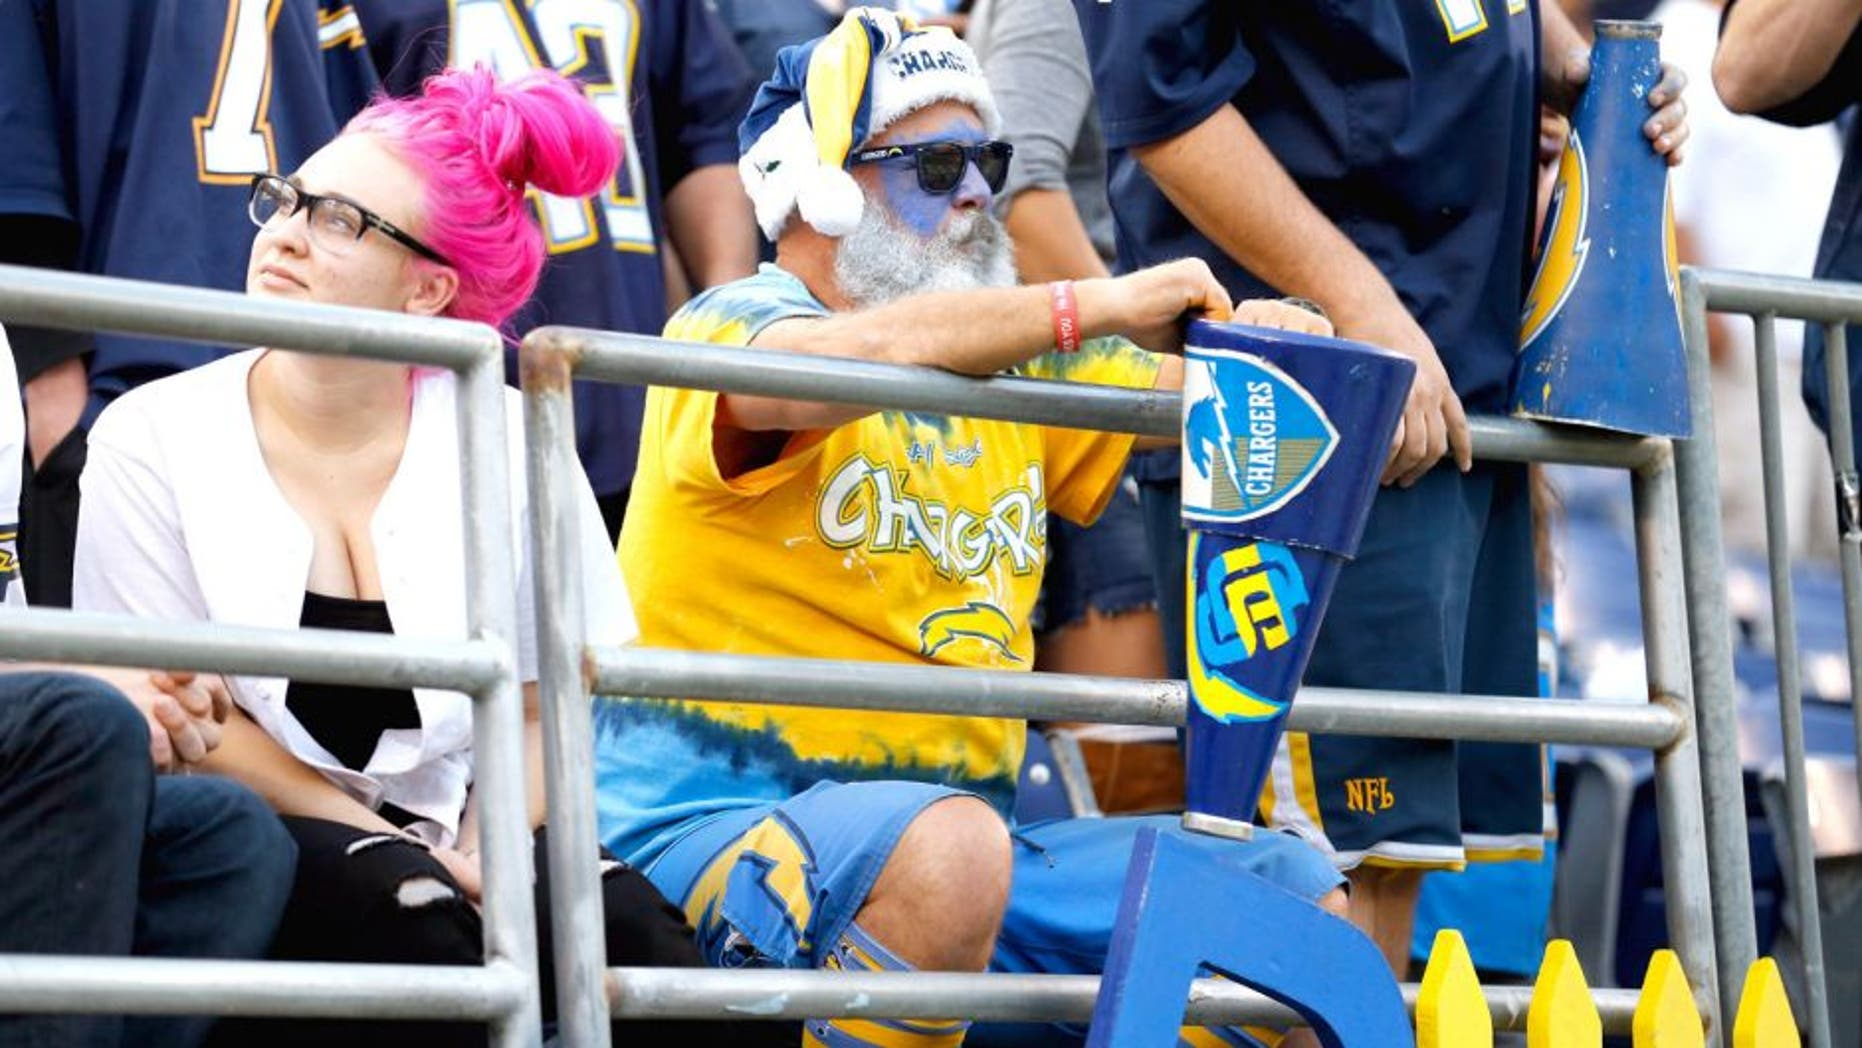 SAN DIEGO, CA - DECEMBER 06: A San Diego Chargers fan sits in the stadium after a game against the Denver Broncos. at Qualcomm Stadium on December 6, 2015 in San Diego, California. The Denver Broncos won 17-3. (Photo by Sean M. Haffey/Getty Images)